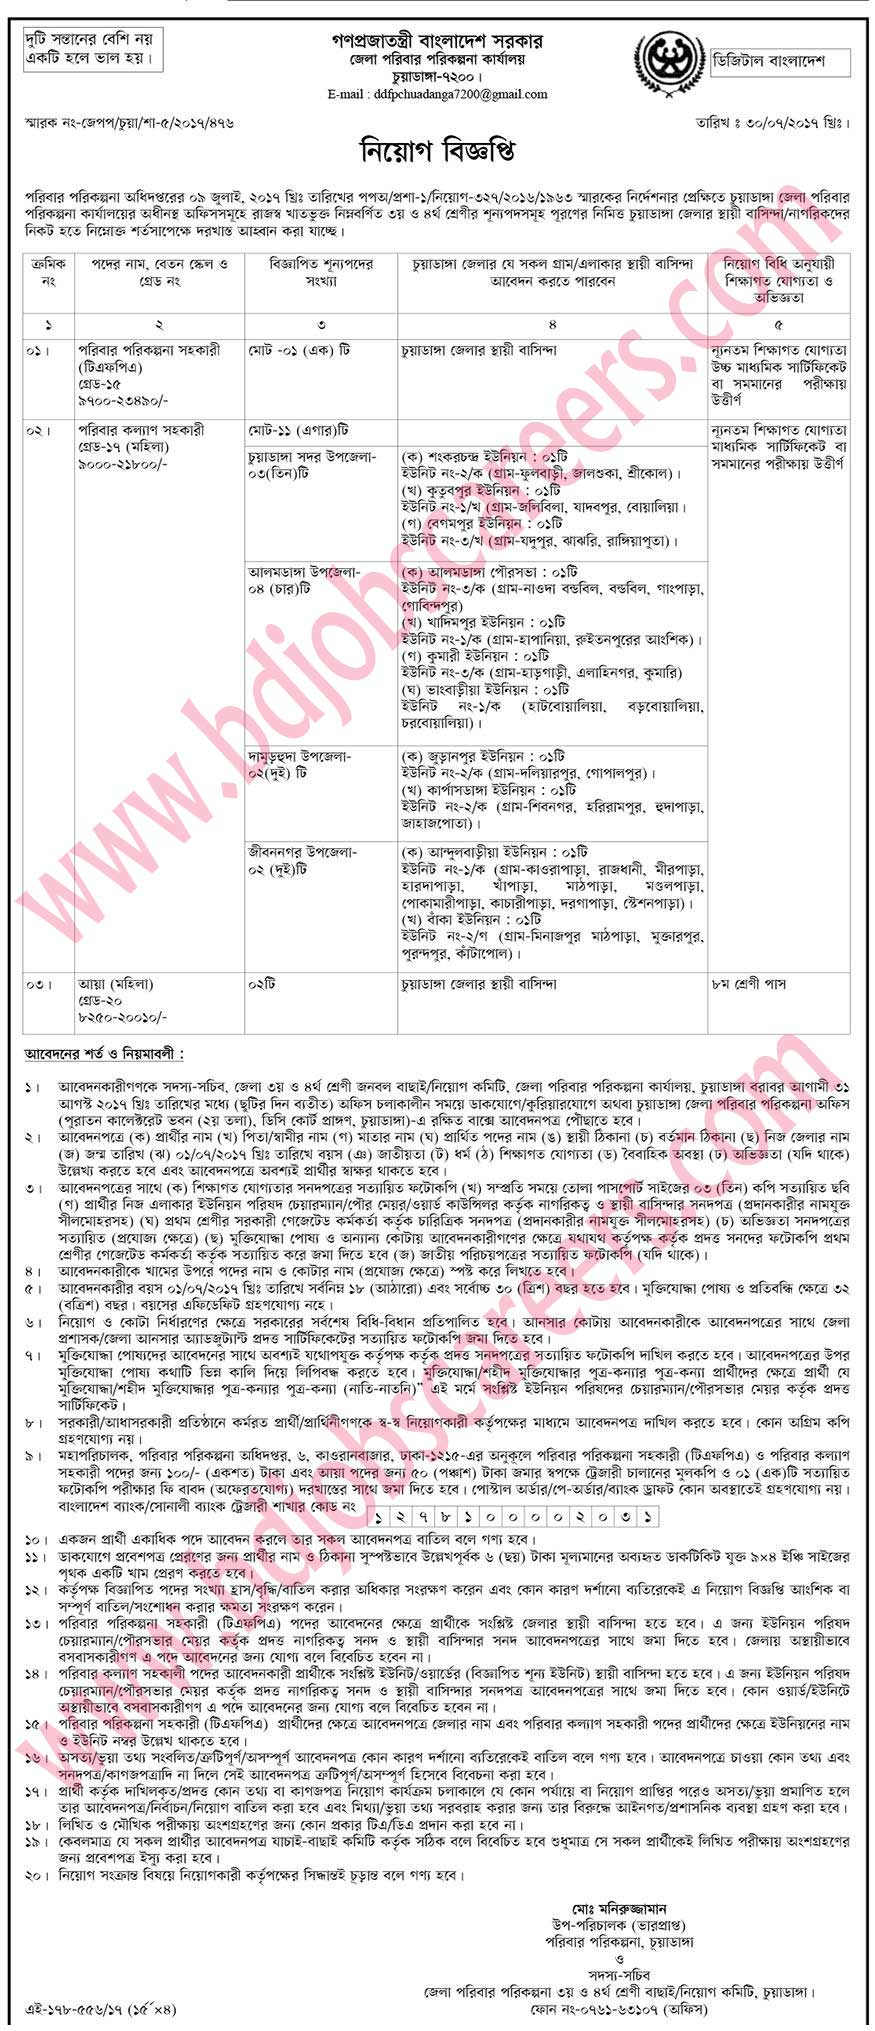 Chuadanga District Family Planning Office Job Circular 2017